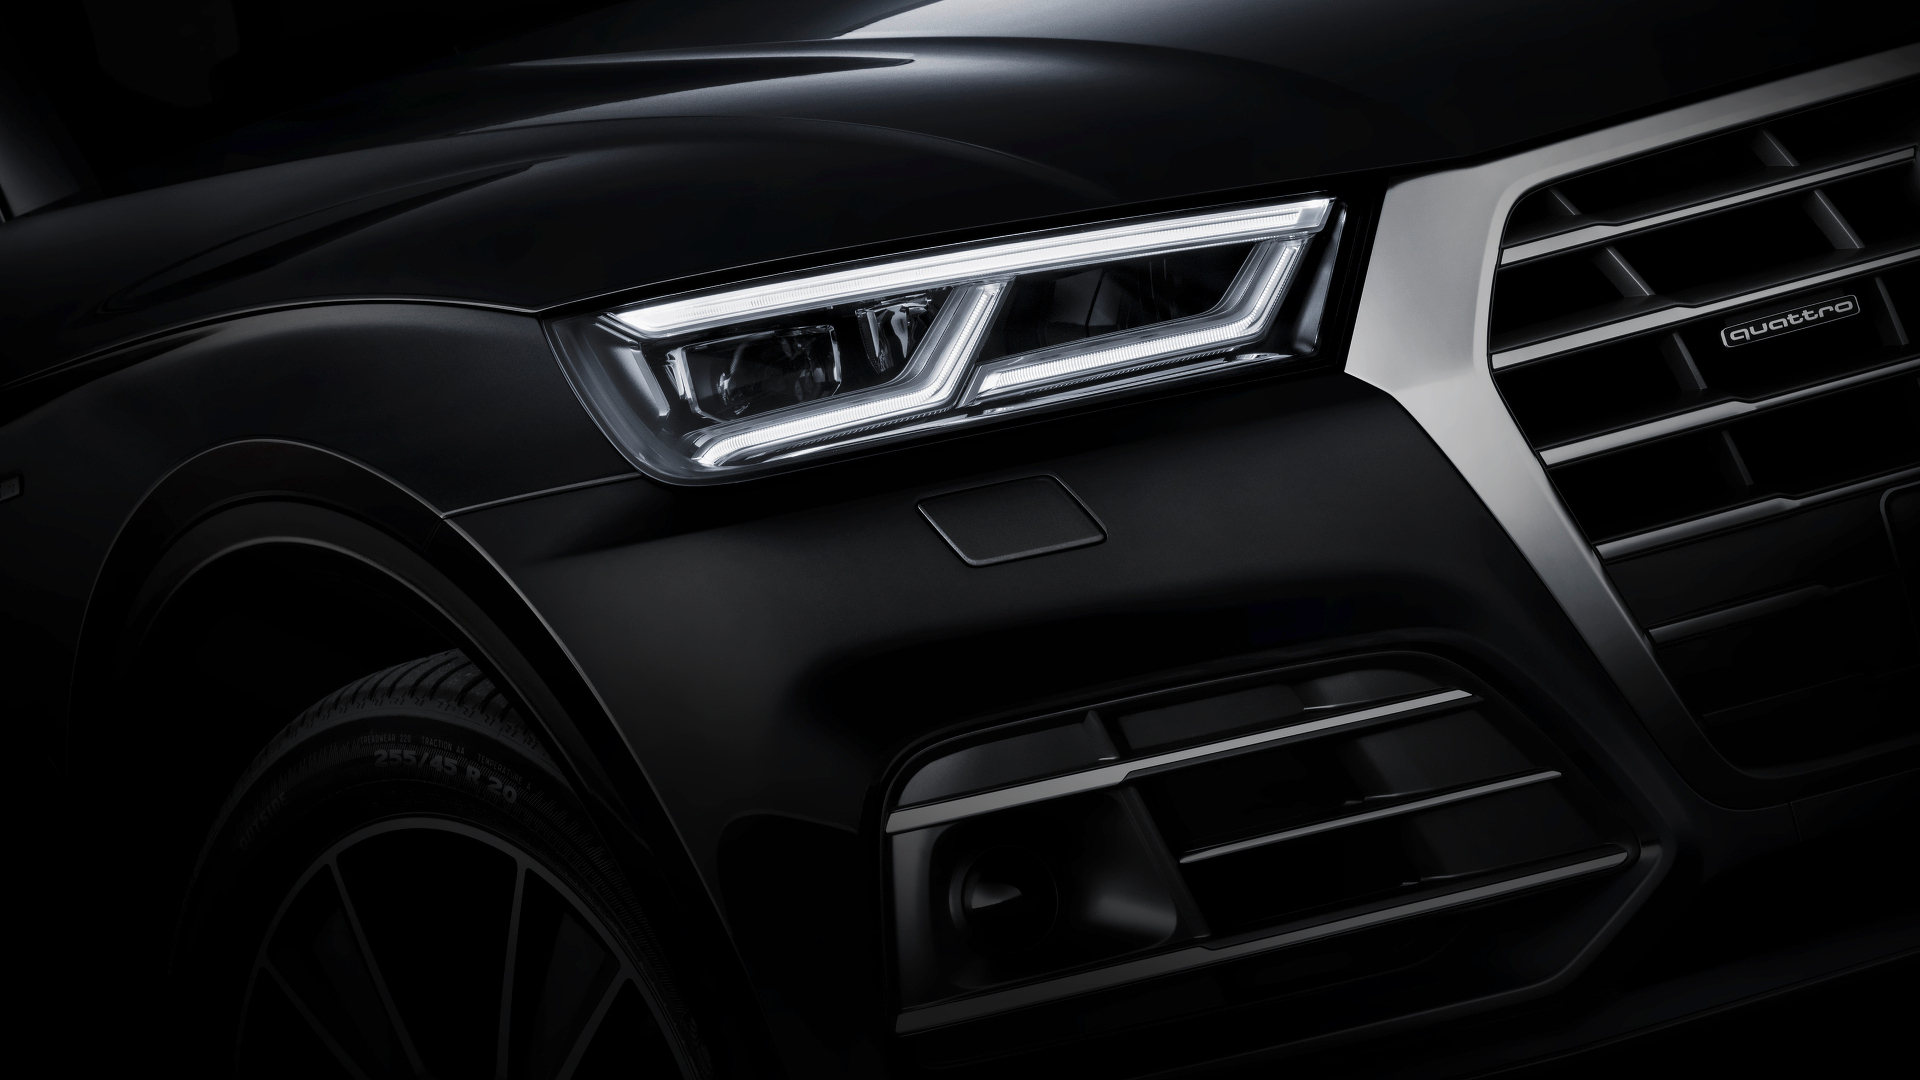 2017 Audi Q5 Shows Matrix LED Headlights and Huge Trunk